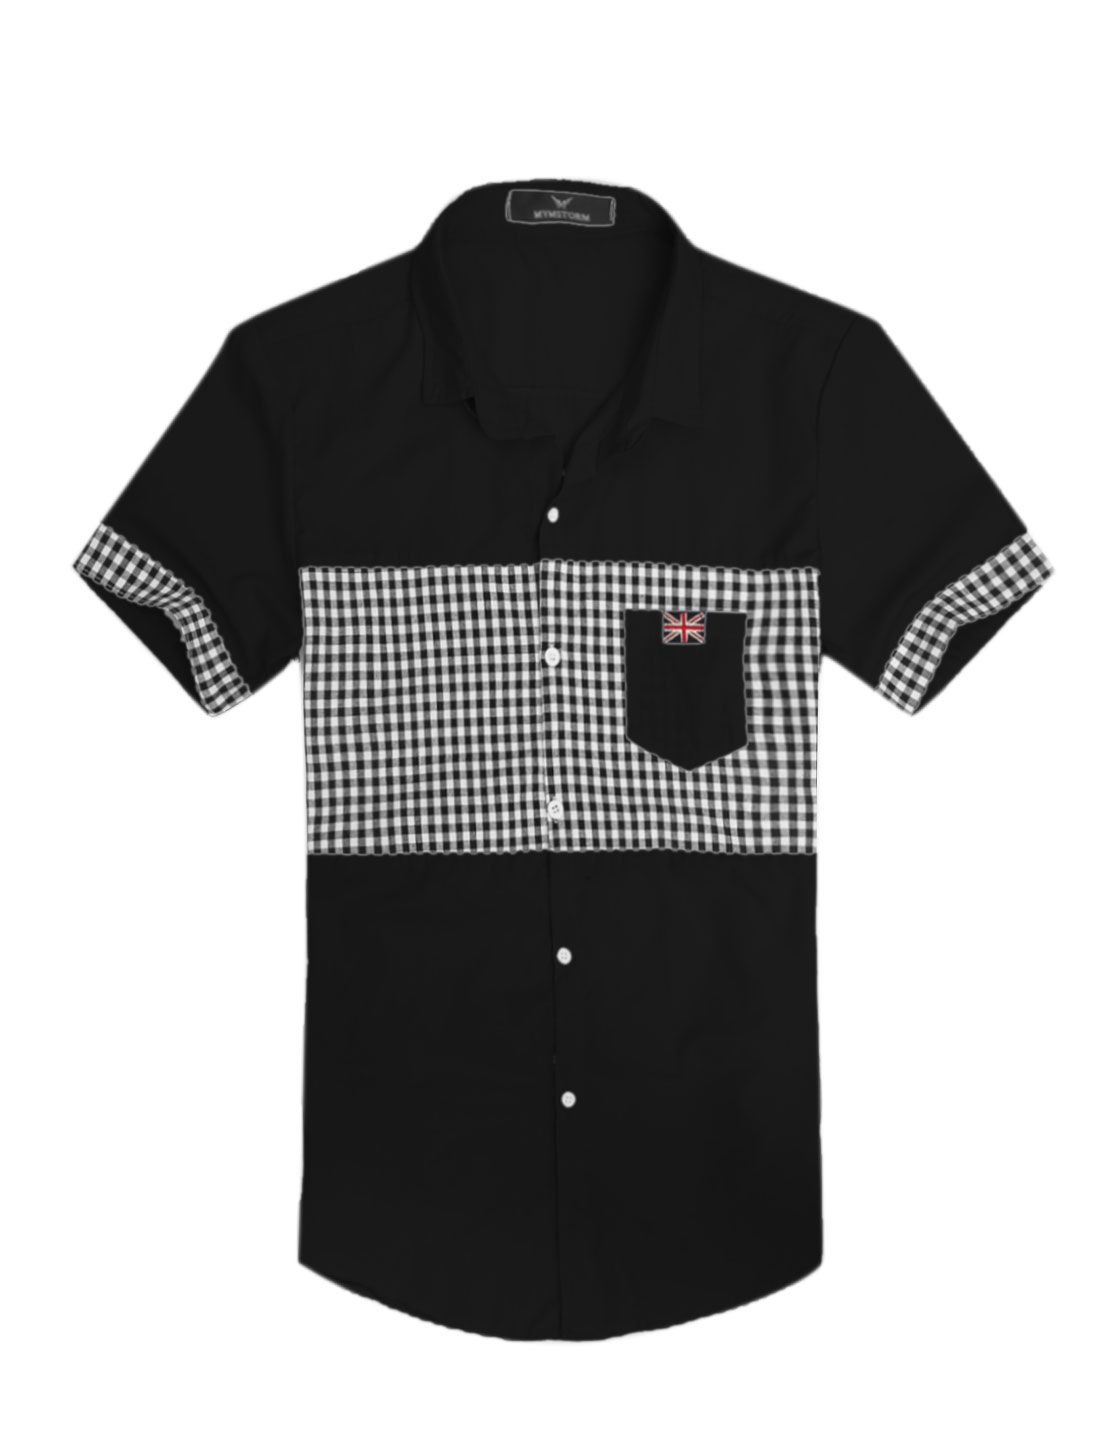 Men Point Collar Plaids Buttons Closed Slim Fit Top Shirt Black M